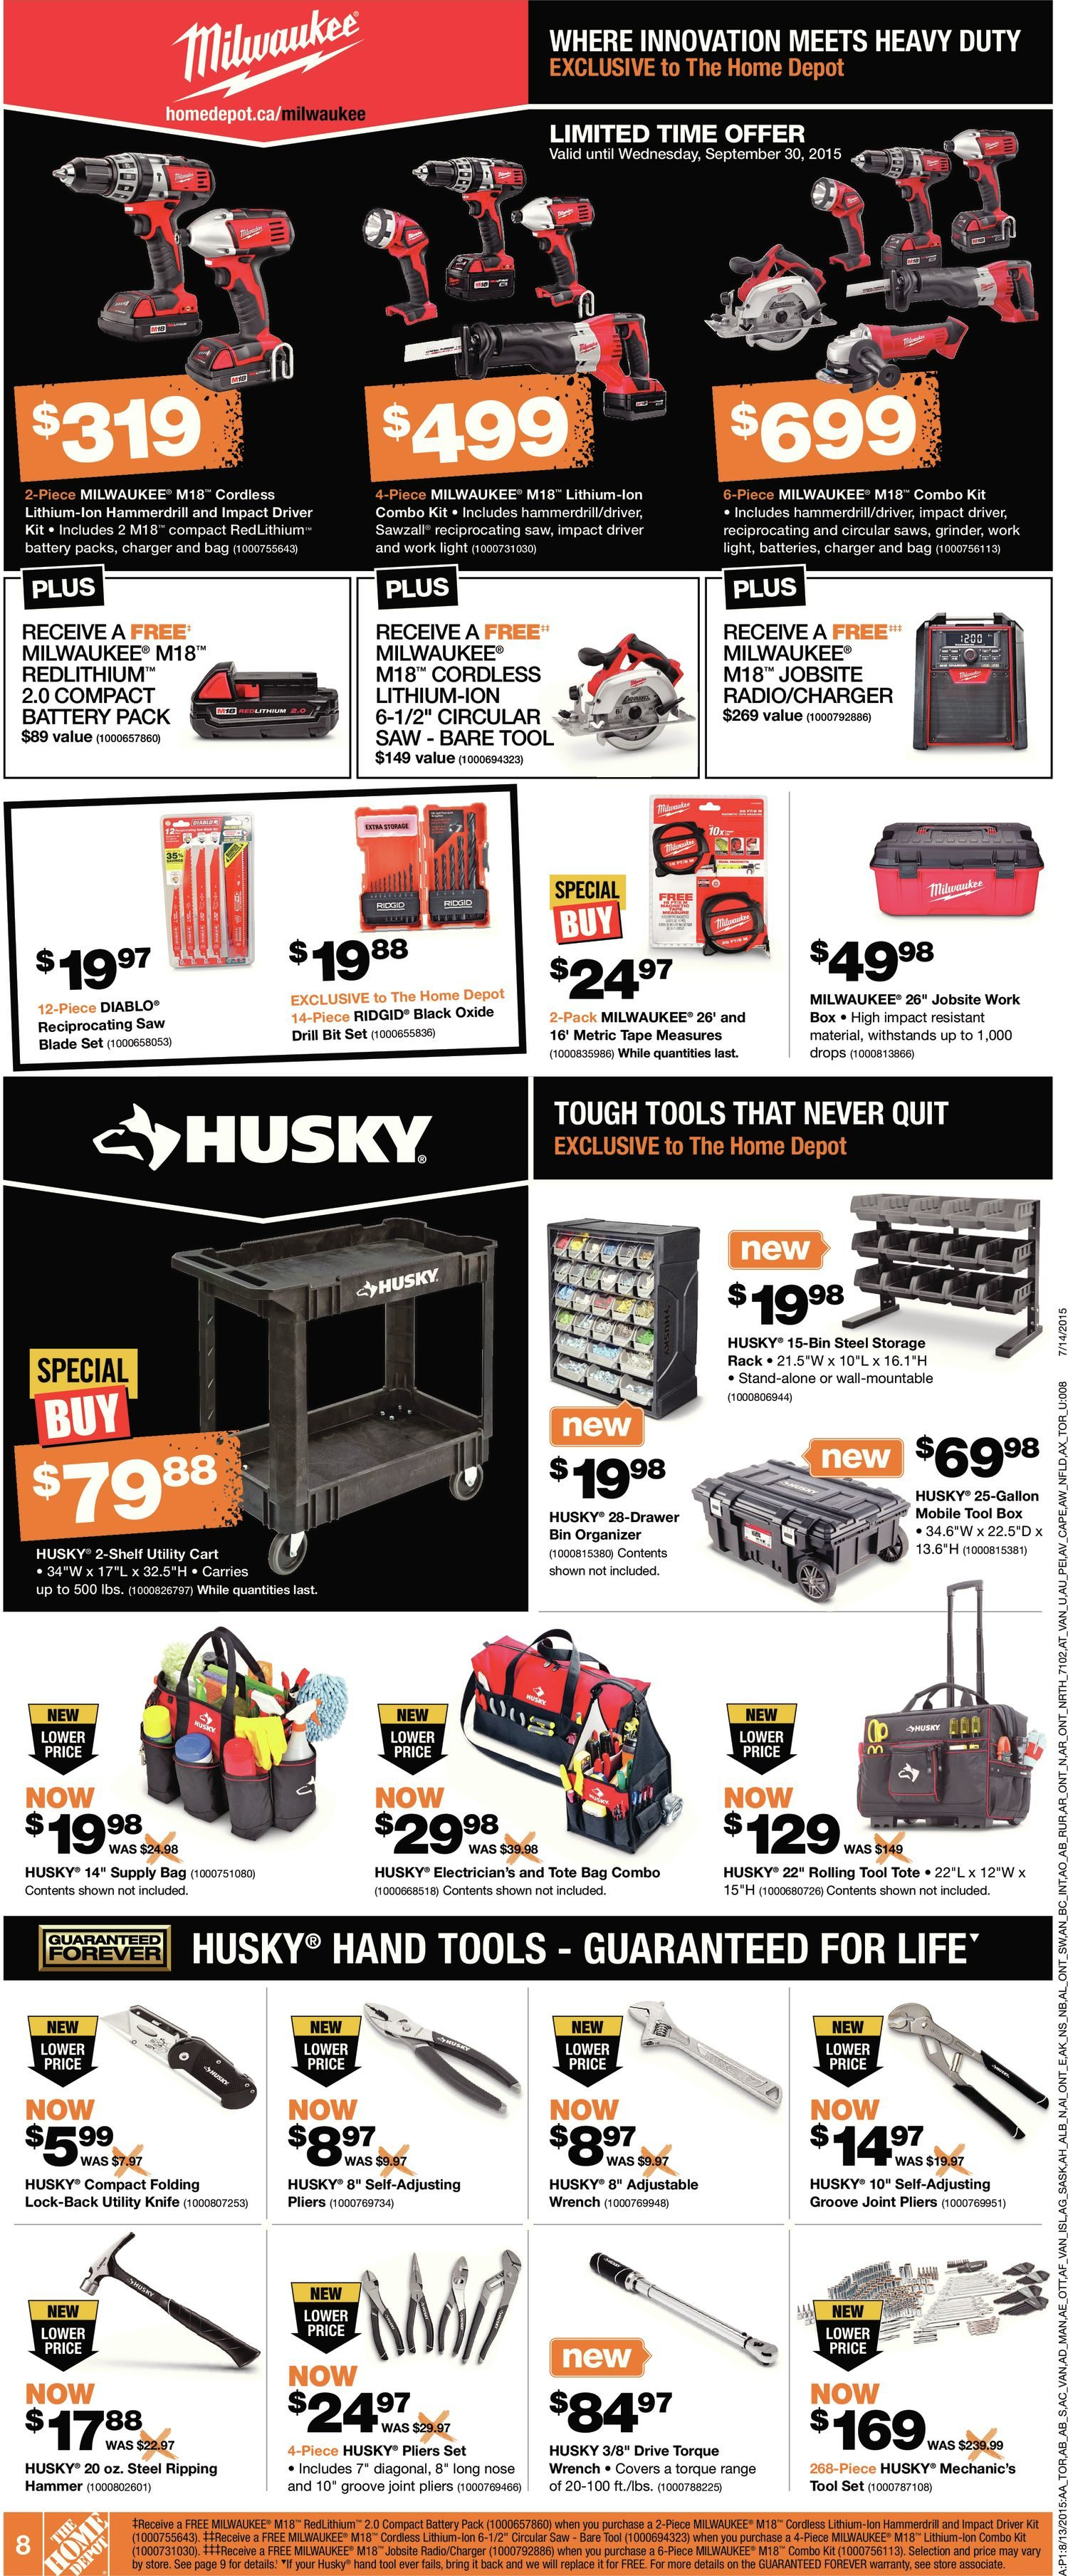 Home Depot Weekly Flyer Aug 13 19 Fuse Box Covers